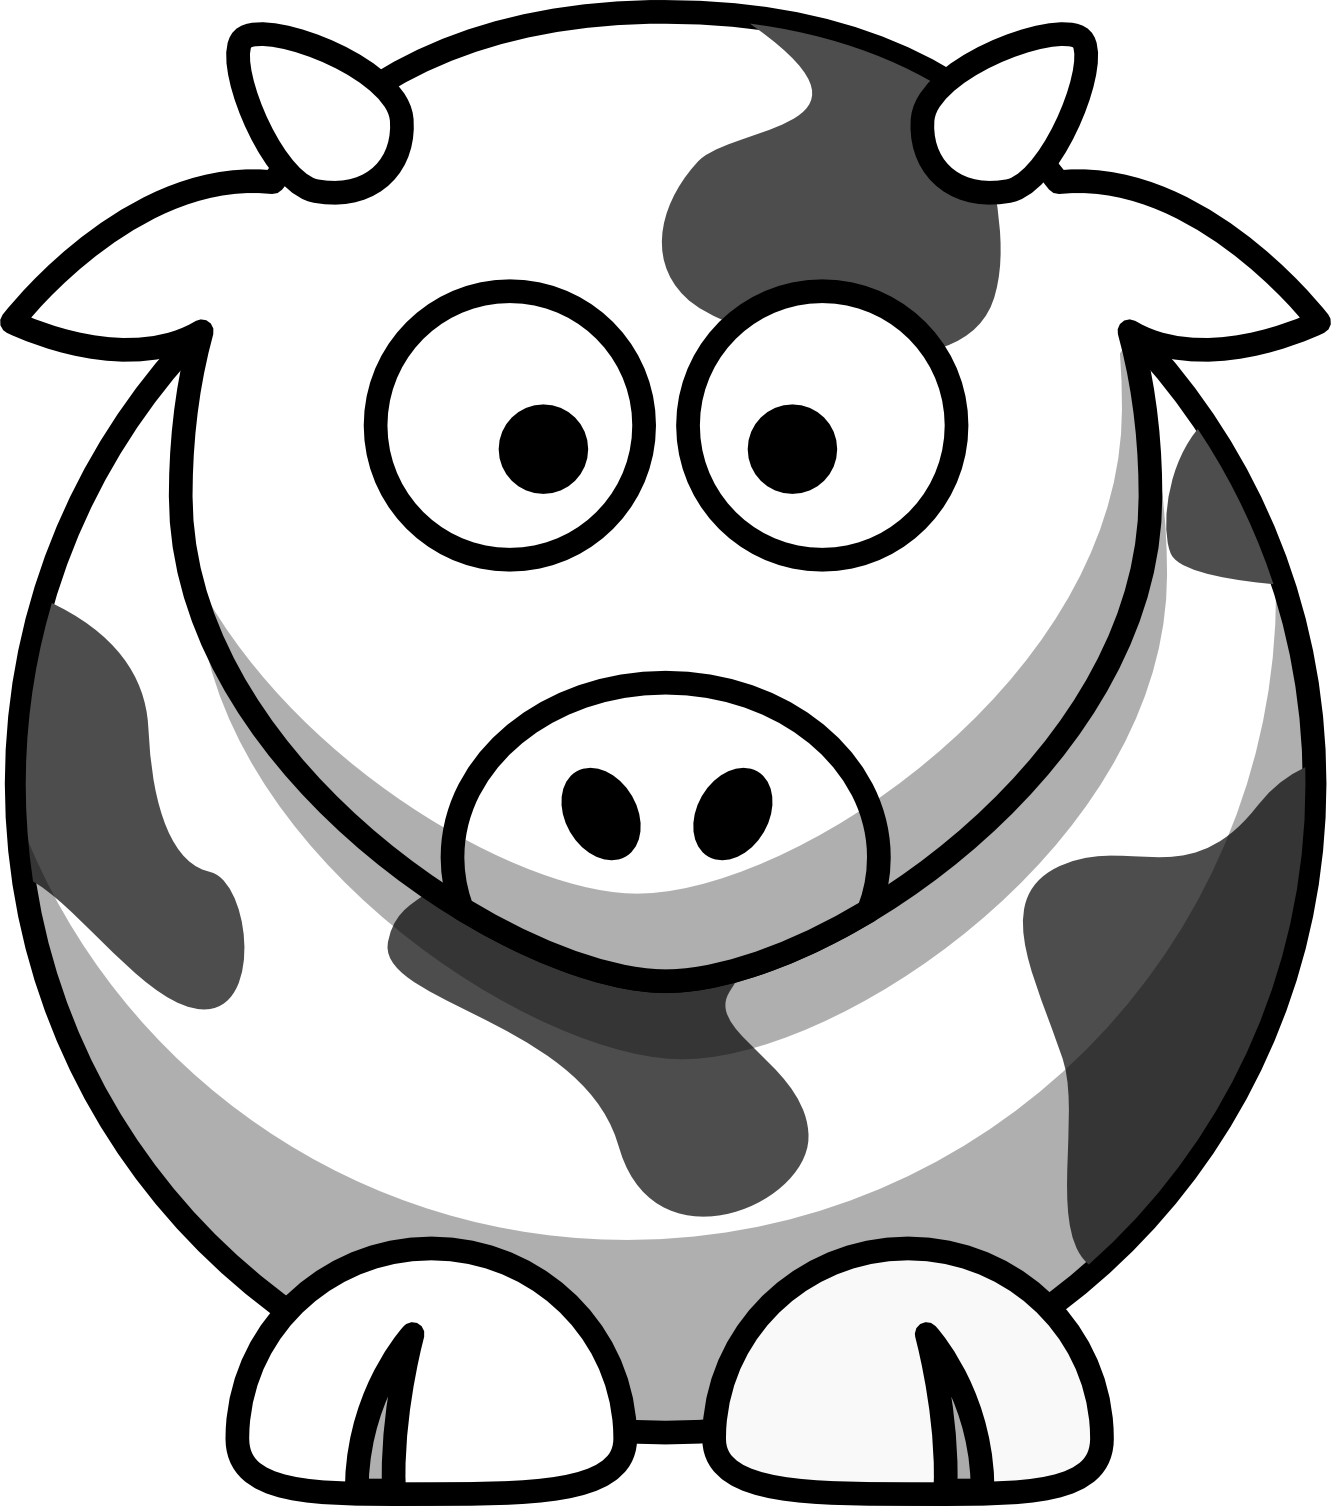 lemmling_cartoon_cow_coloring_book_colouring_black_white